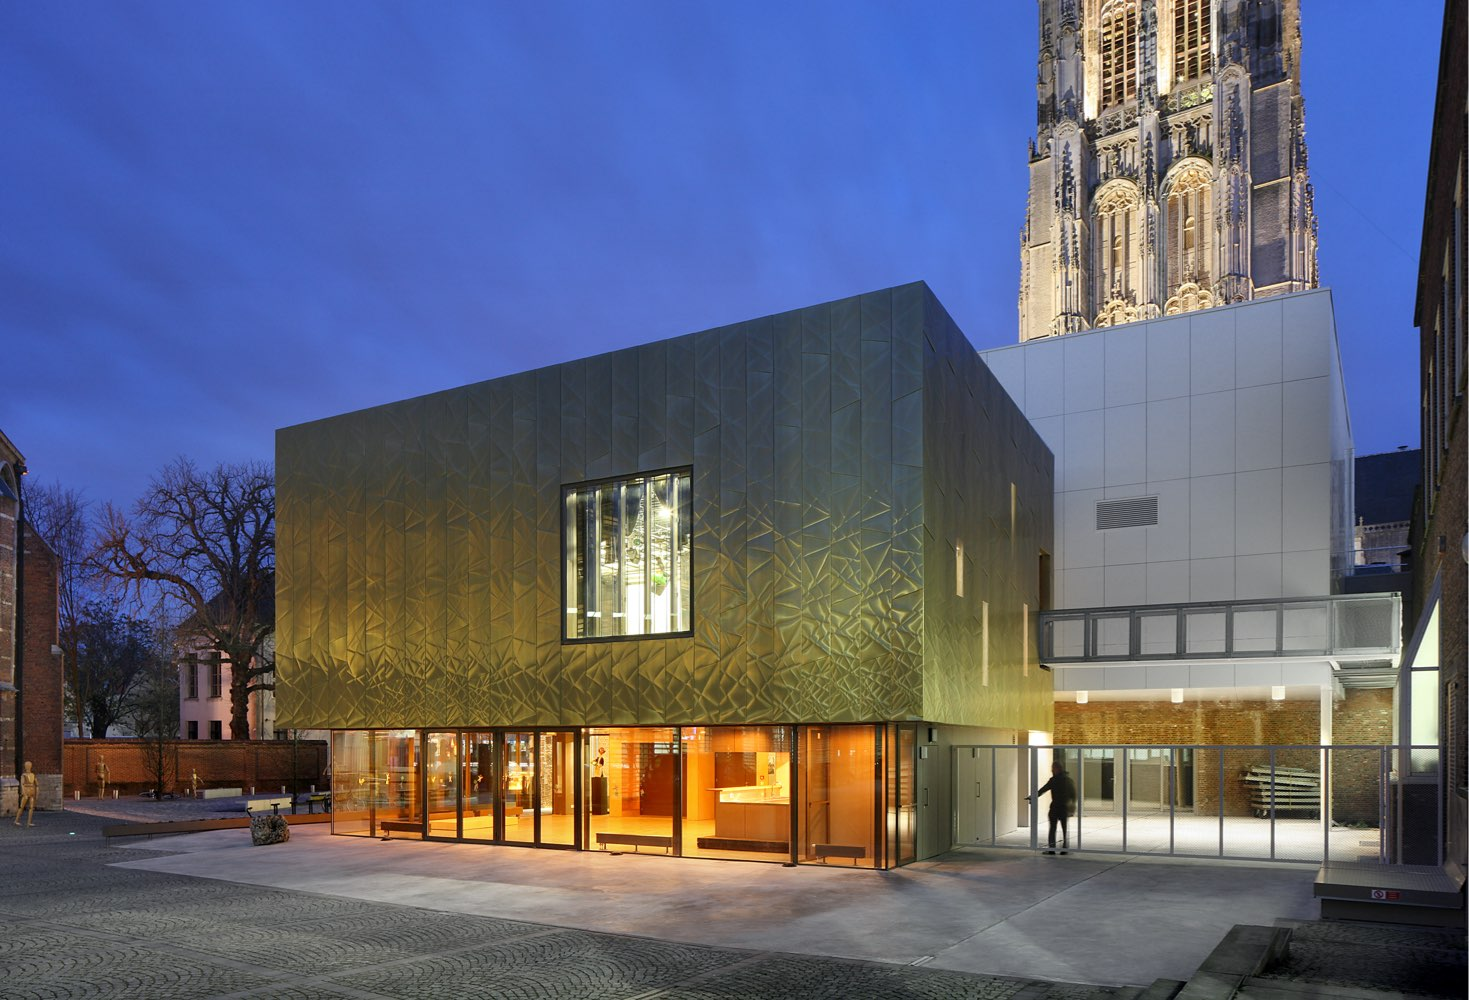 Outside view of The Moon Art Centre located in Mechelen, Belgium during nighttime. The building has light coming from the inside. The walls are clad from Nordic Royal Copper by Aurubis. A man is on the right o the building. An old, tall tower is in the background.